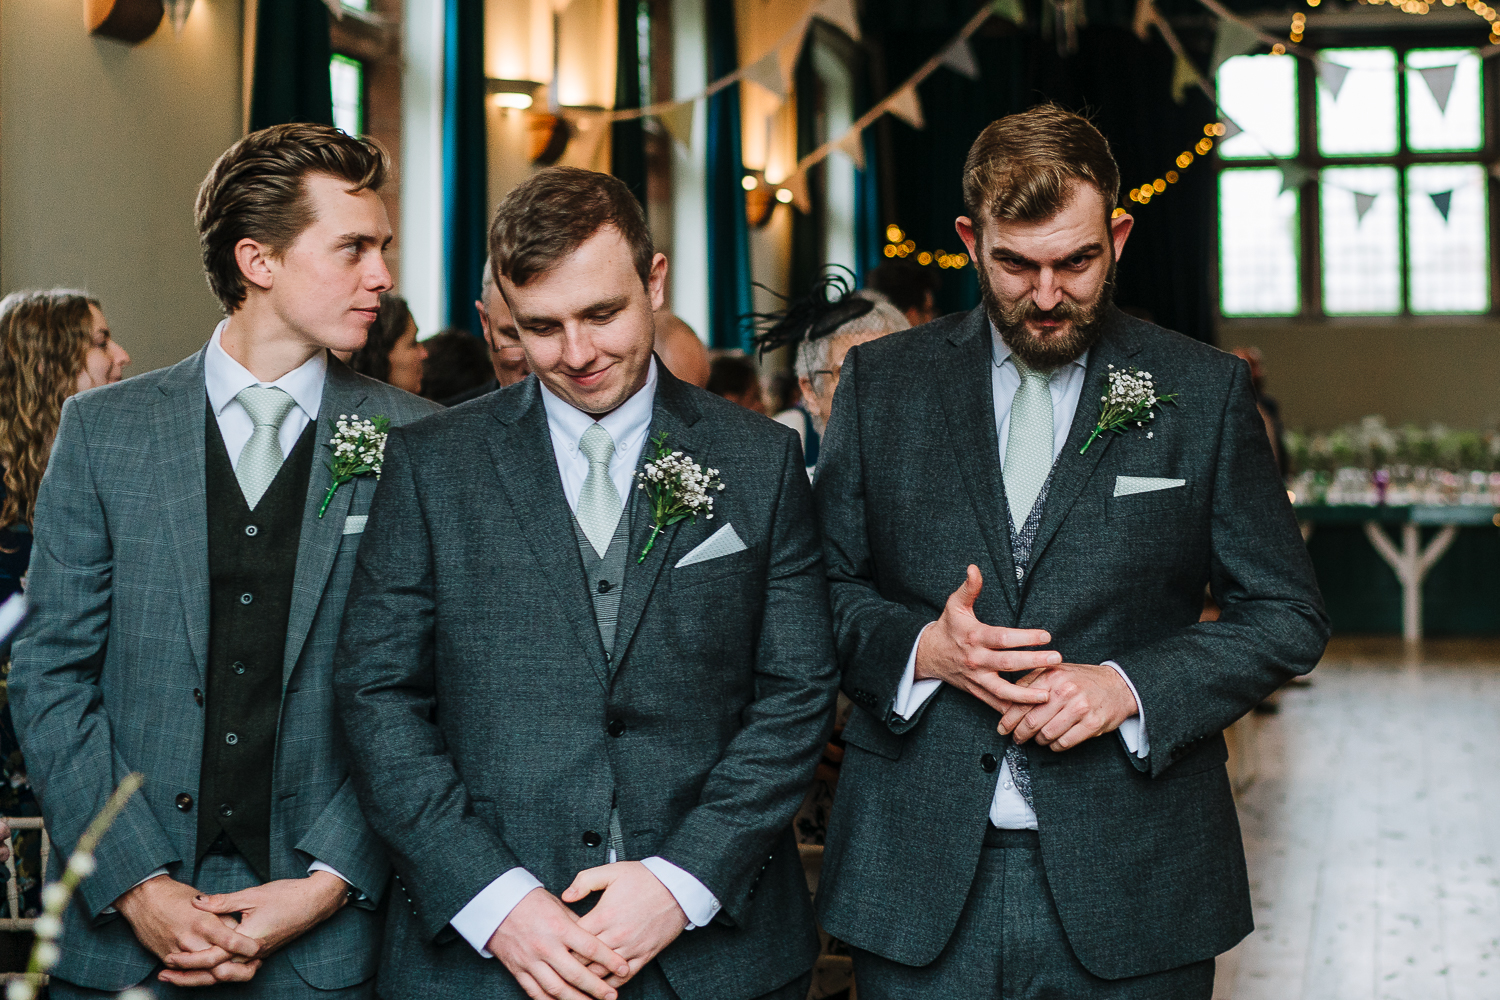 Groomsmen waiting for the bride